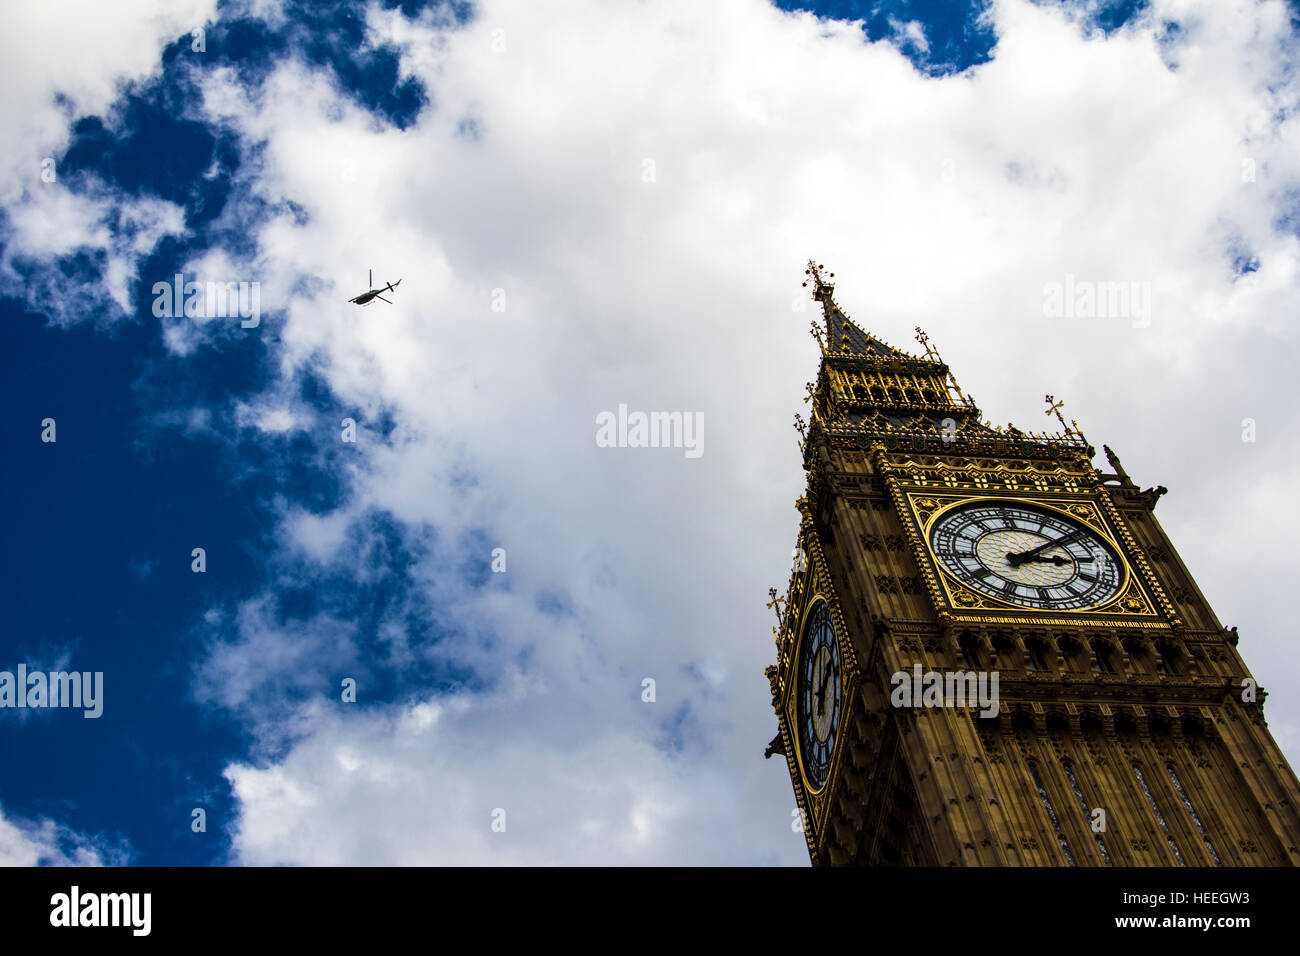 A helicopter flying over the Big Ben in London - Stock Image